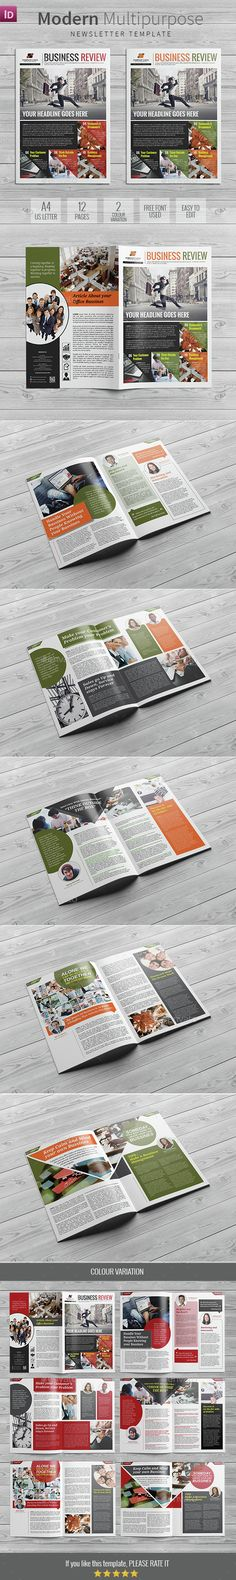 ABSOLUTELY FREE Pocket Calendar 2016 Basic Layout Printed size 98 - free newsletter layout templates